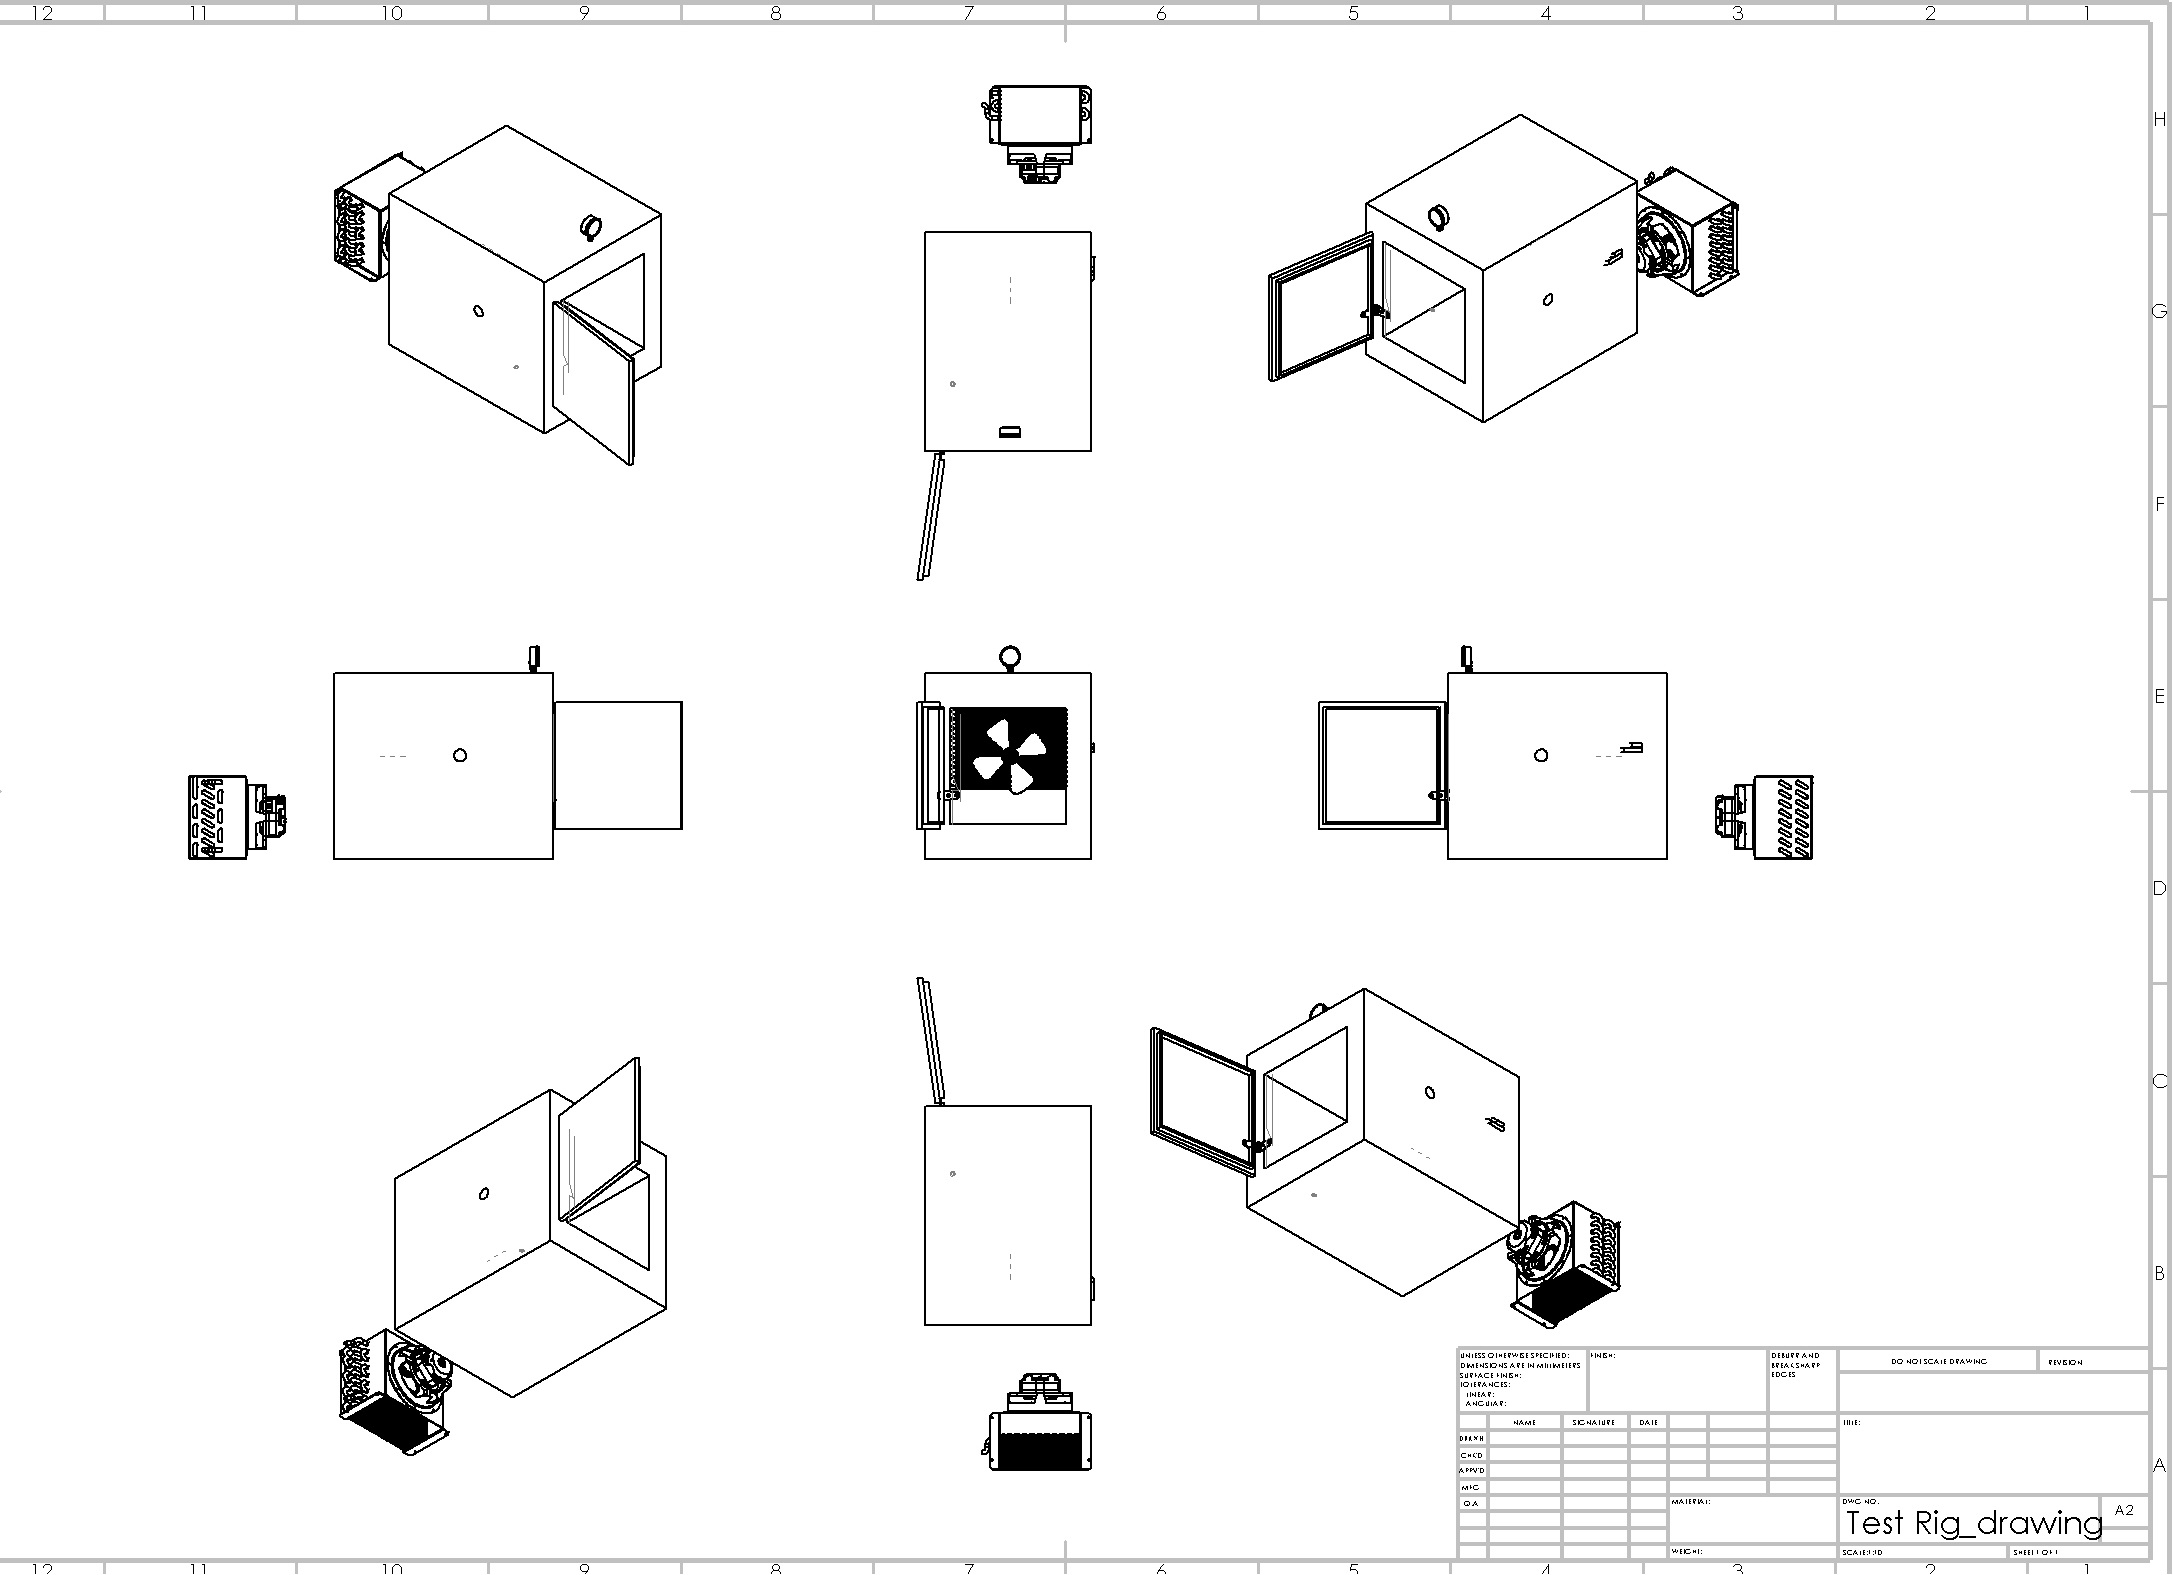 Golf Buggy Cad Drawing Cart Customs Pin Desulfator Circuit Diagram Image Search Results On Pinterest